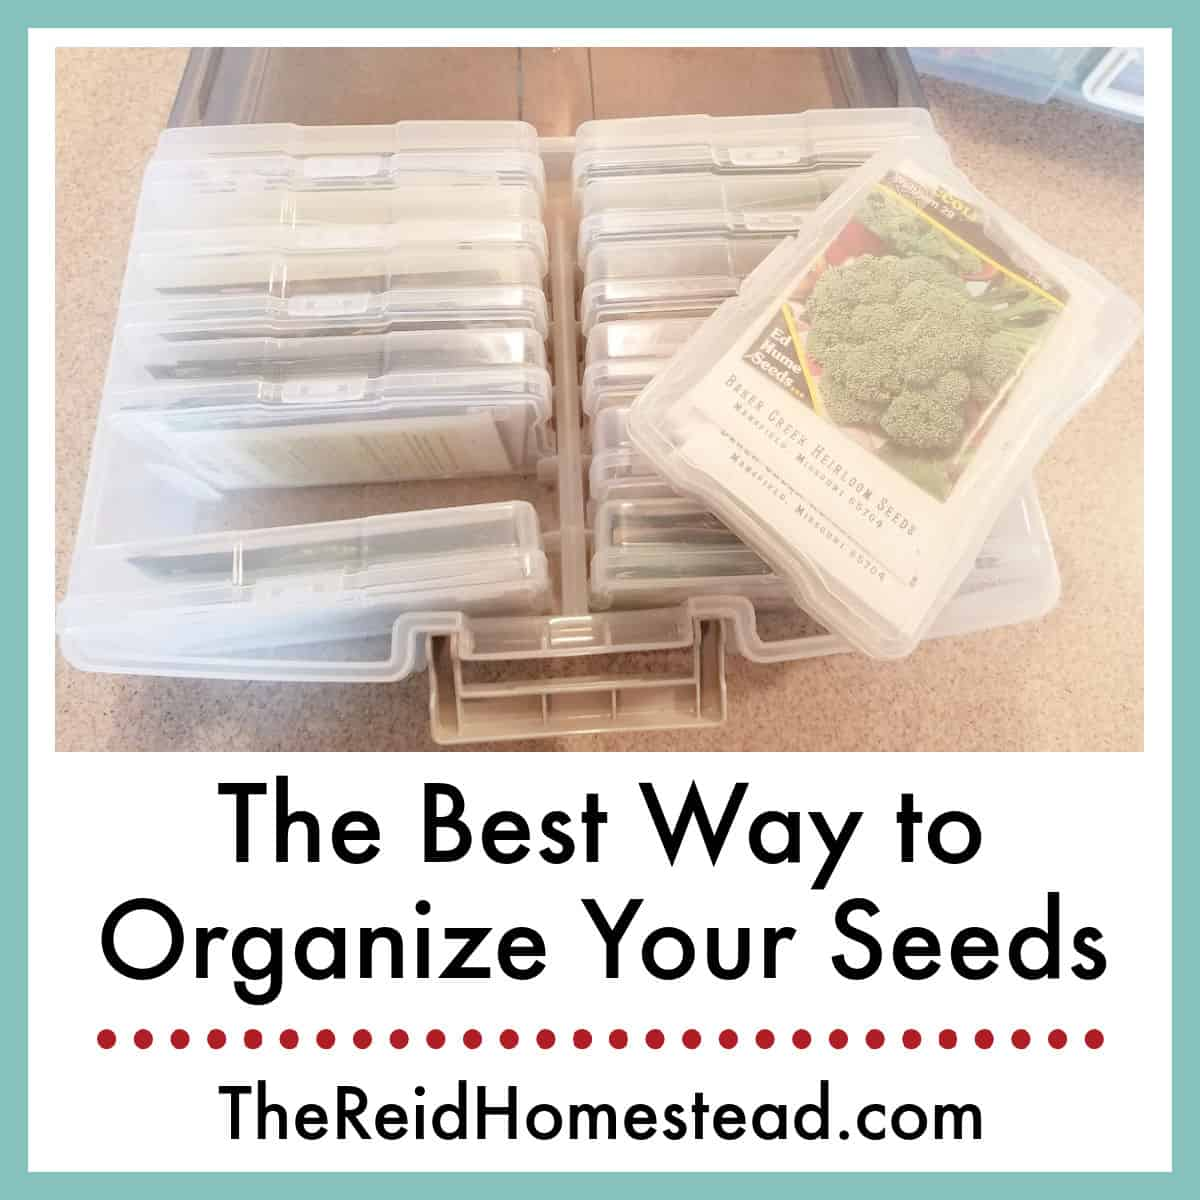 How to Keep Your Seed Stash Organized